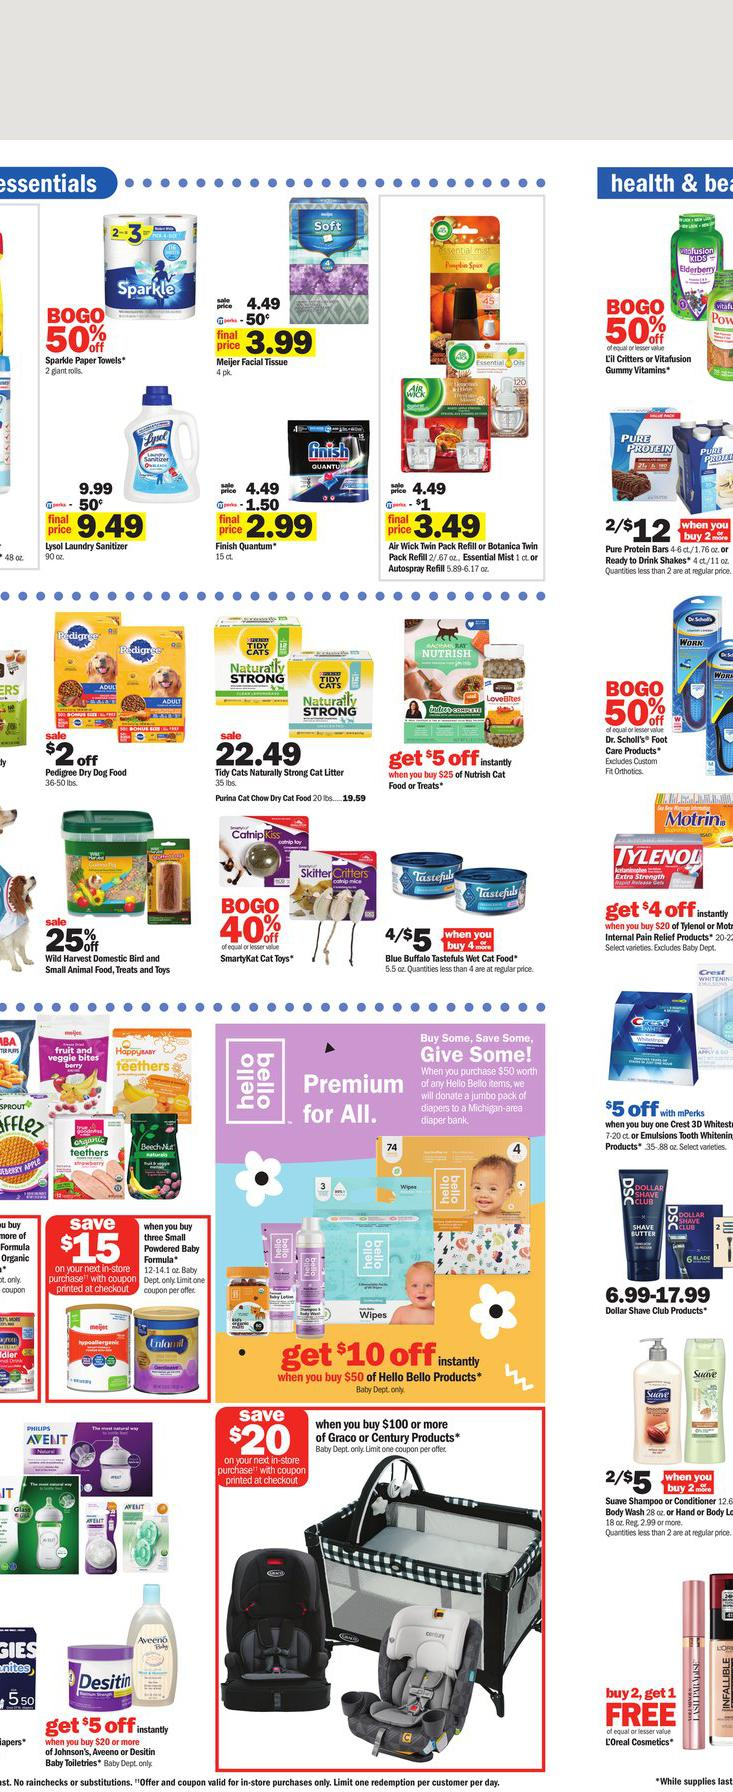 10.10.2021 Meijer ad 14. page